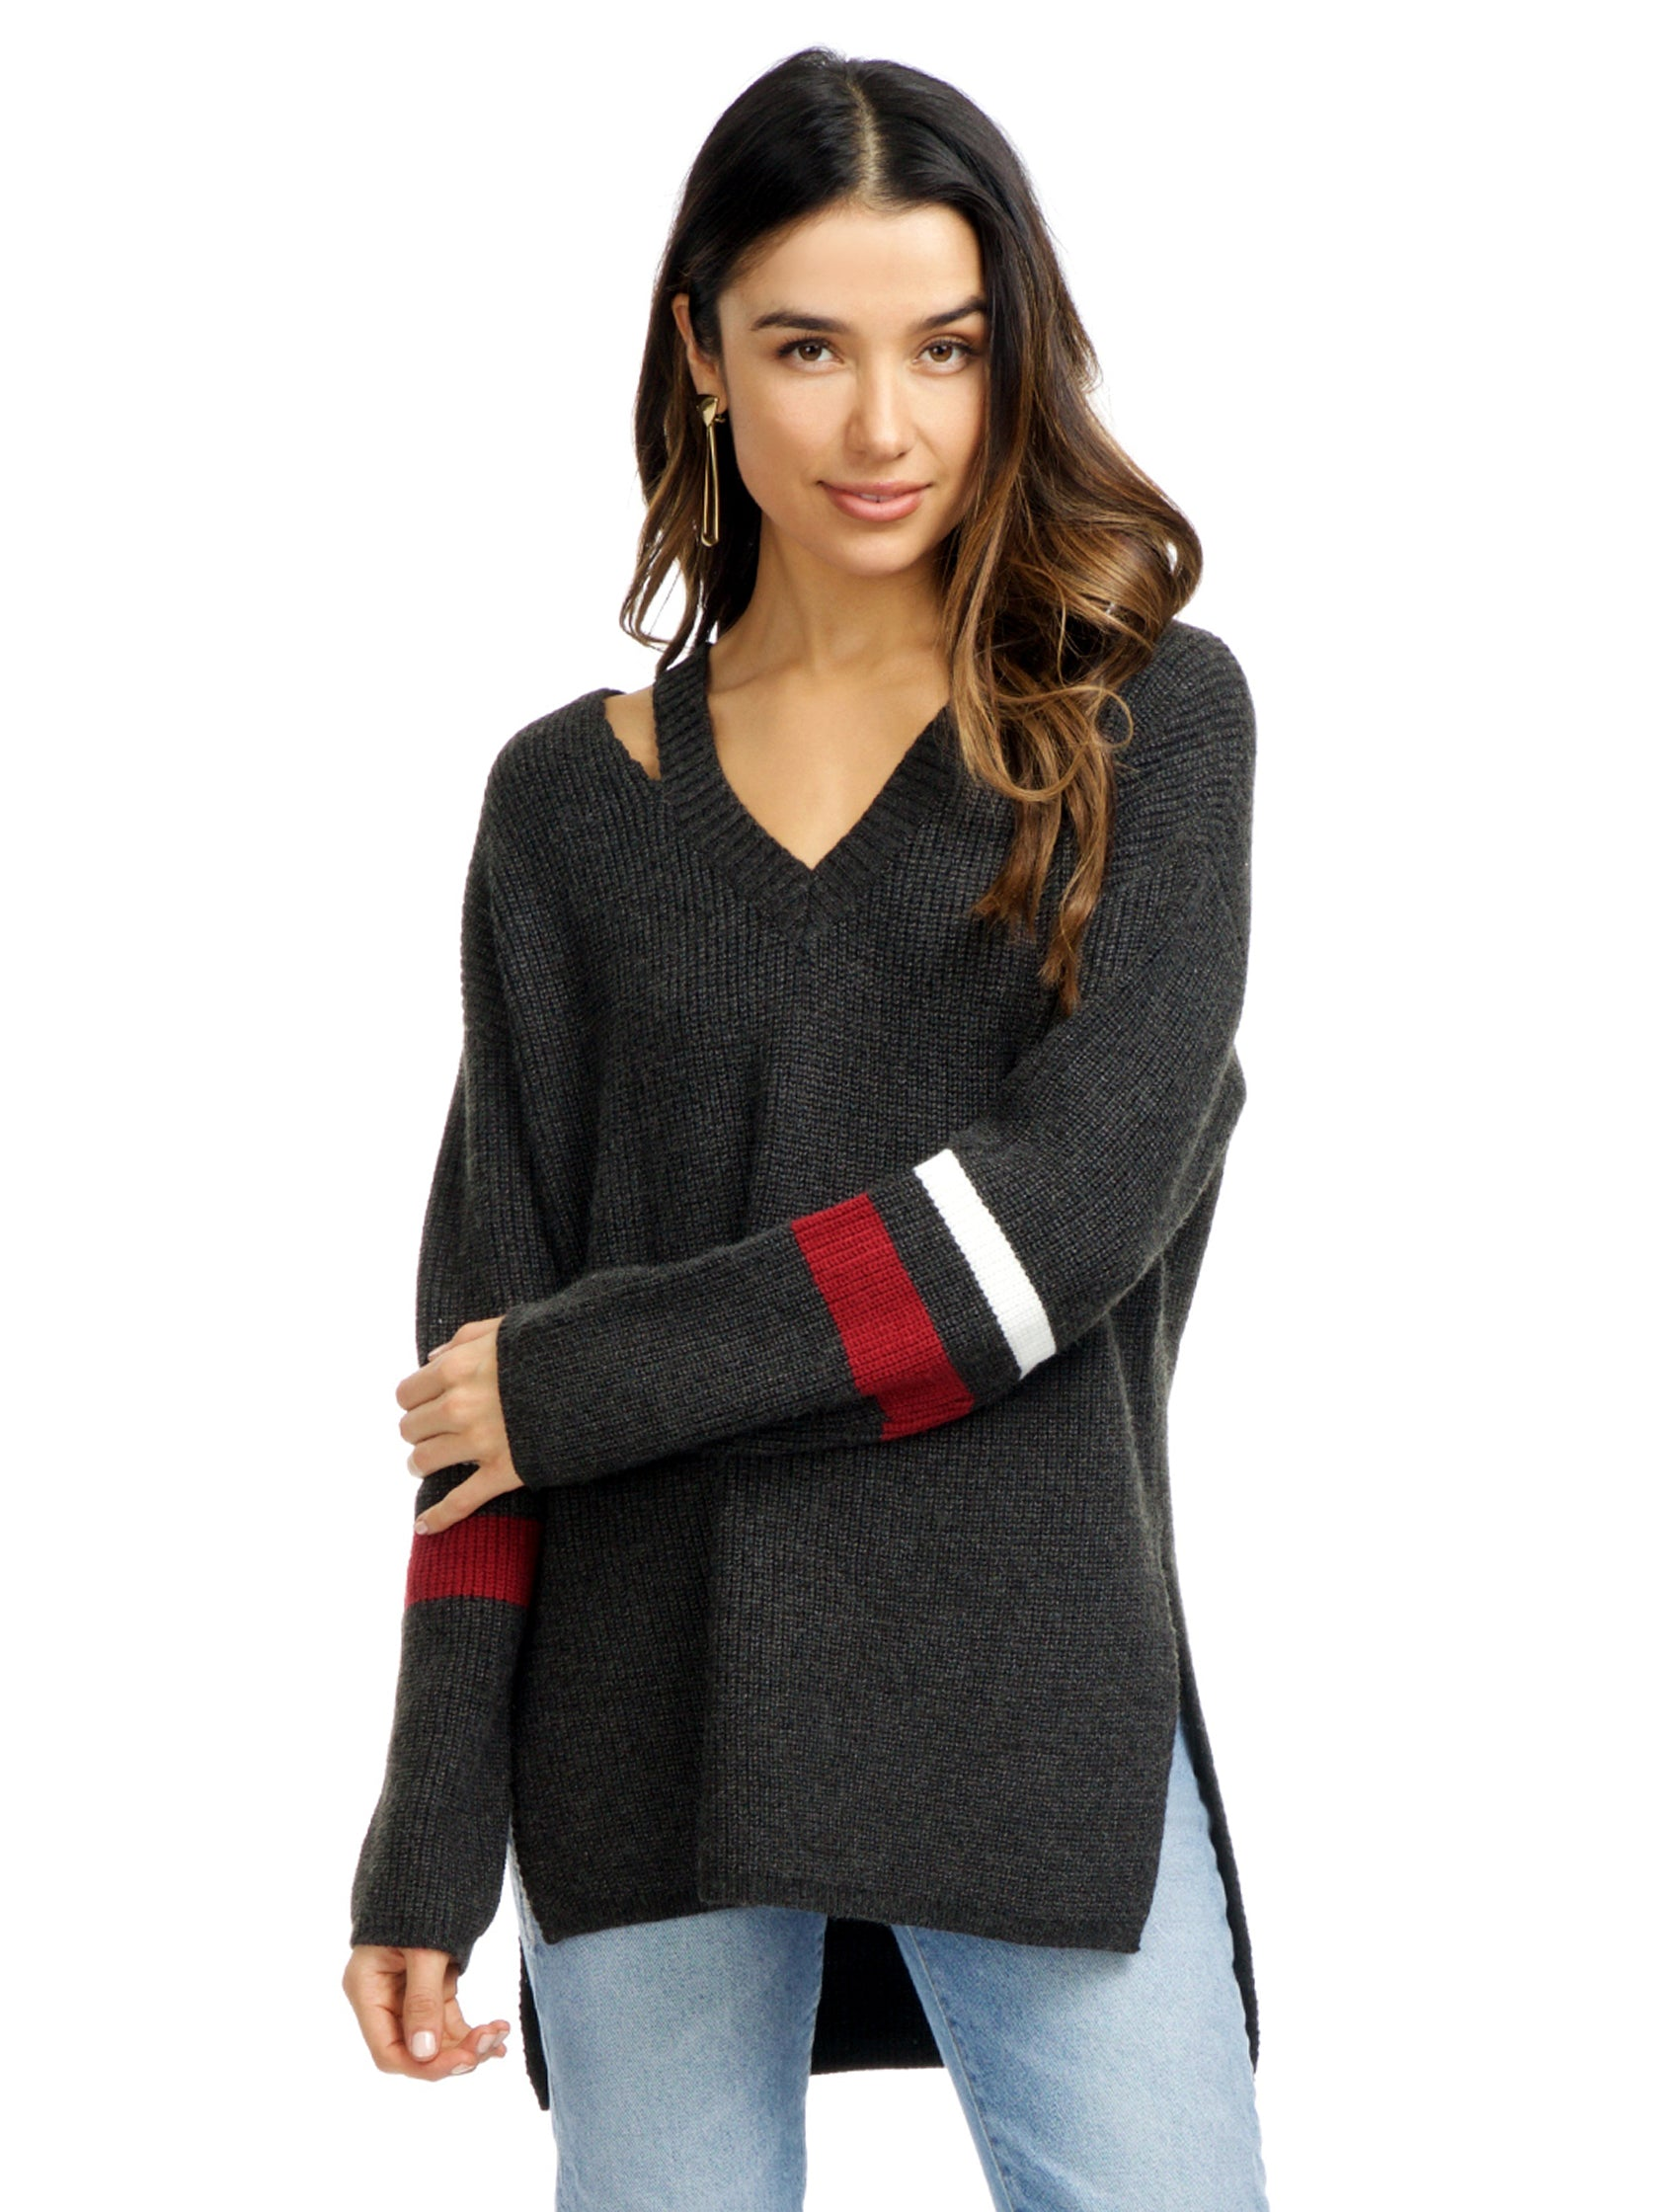 Woman wearing a sweater rental from Strut & Bolt called Cutout Stripe Sweater